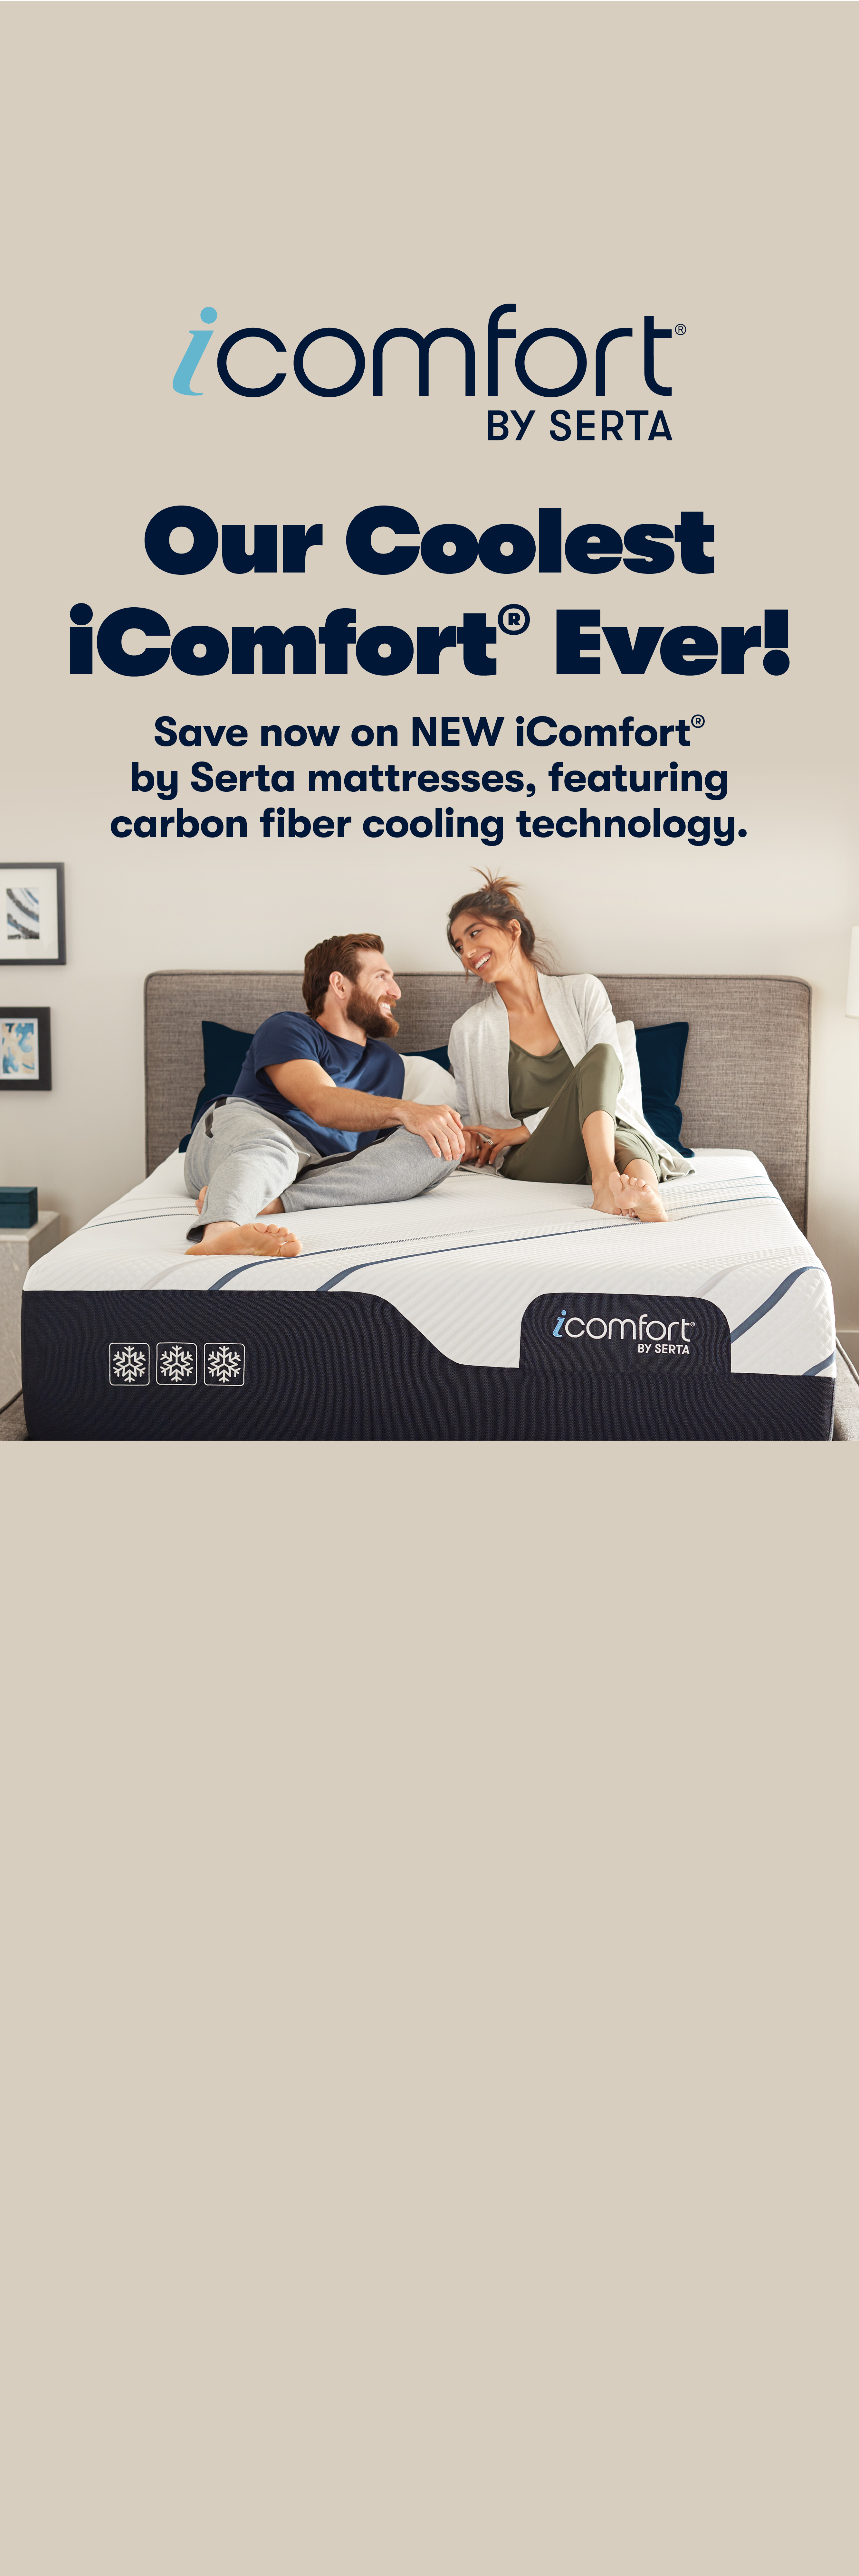 Couple laying on Serta iComfort Hybrid mattress